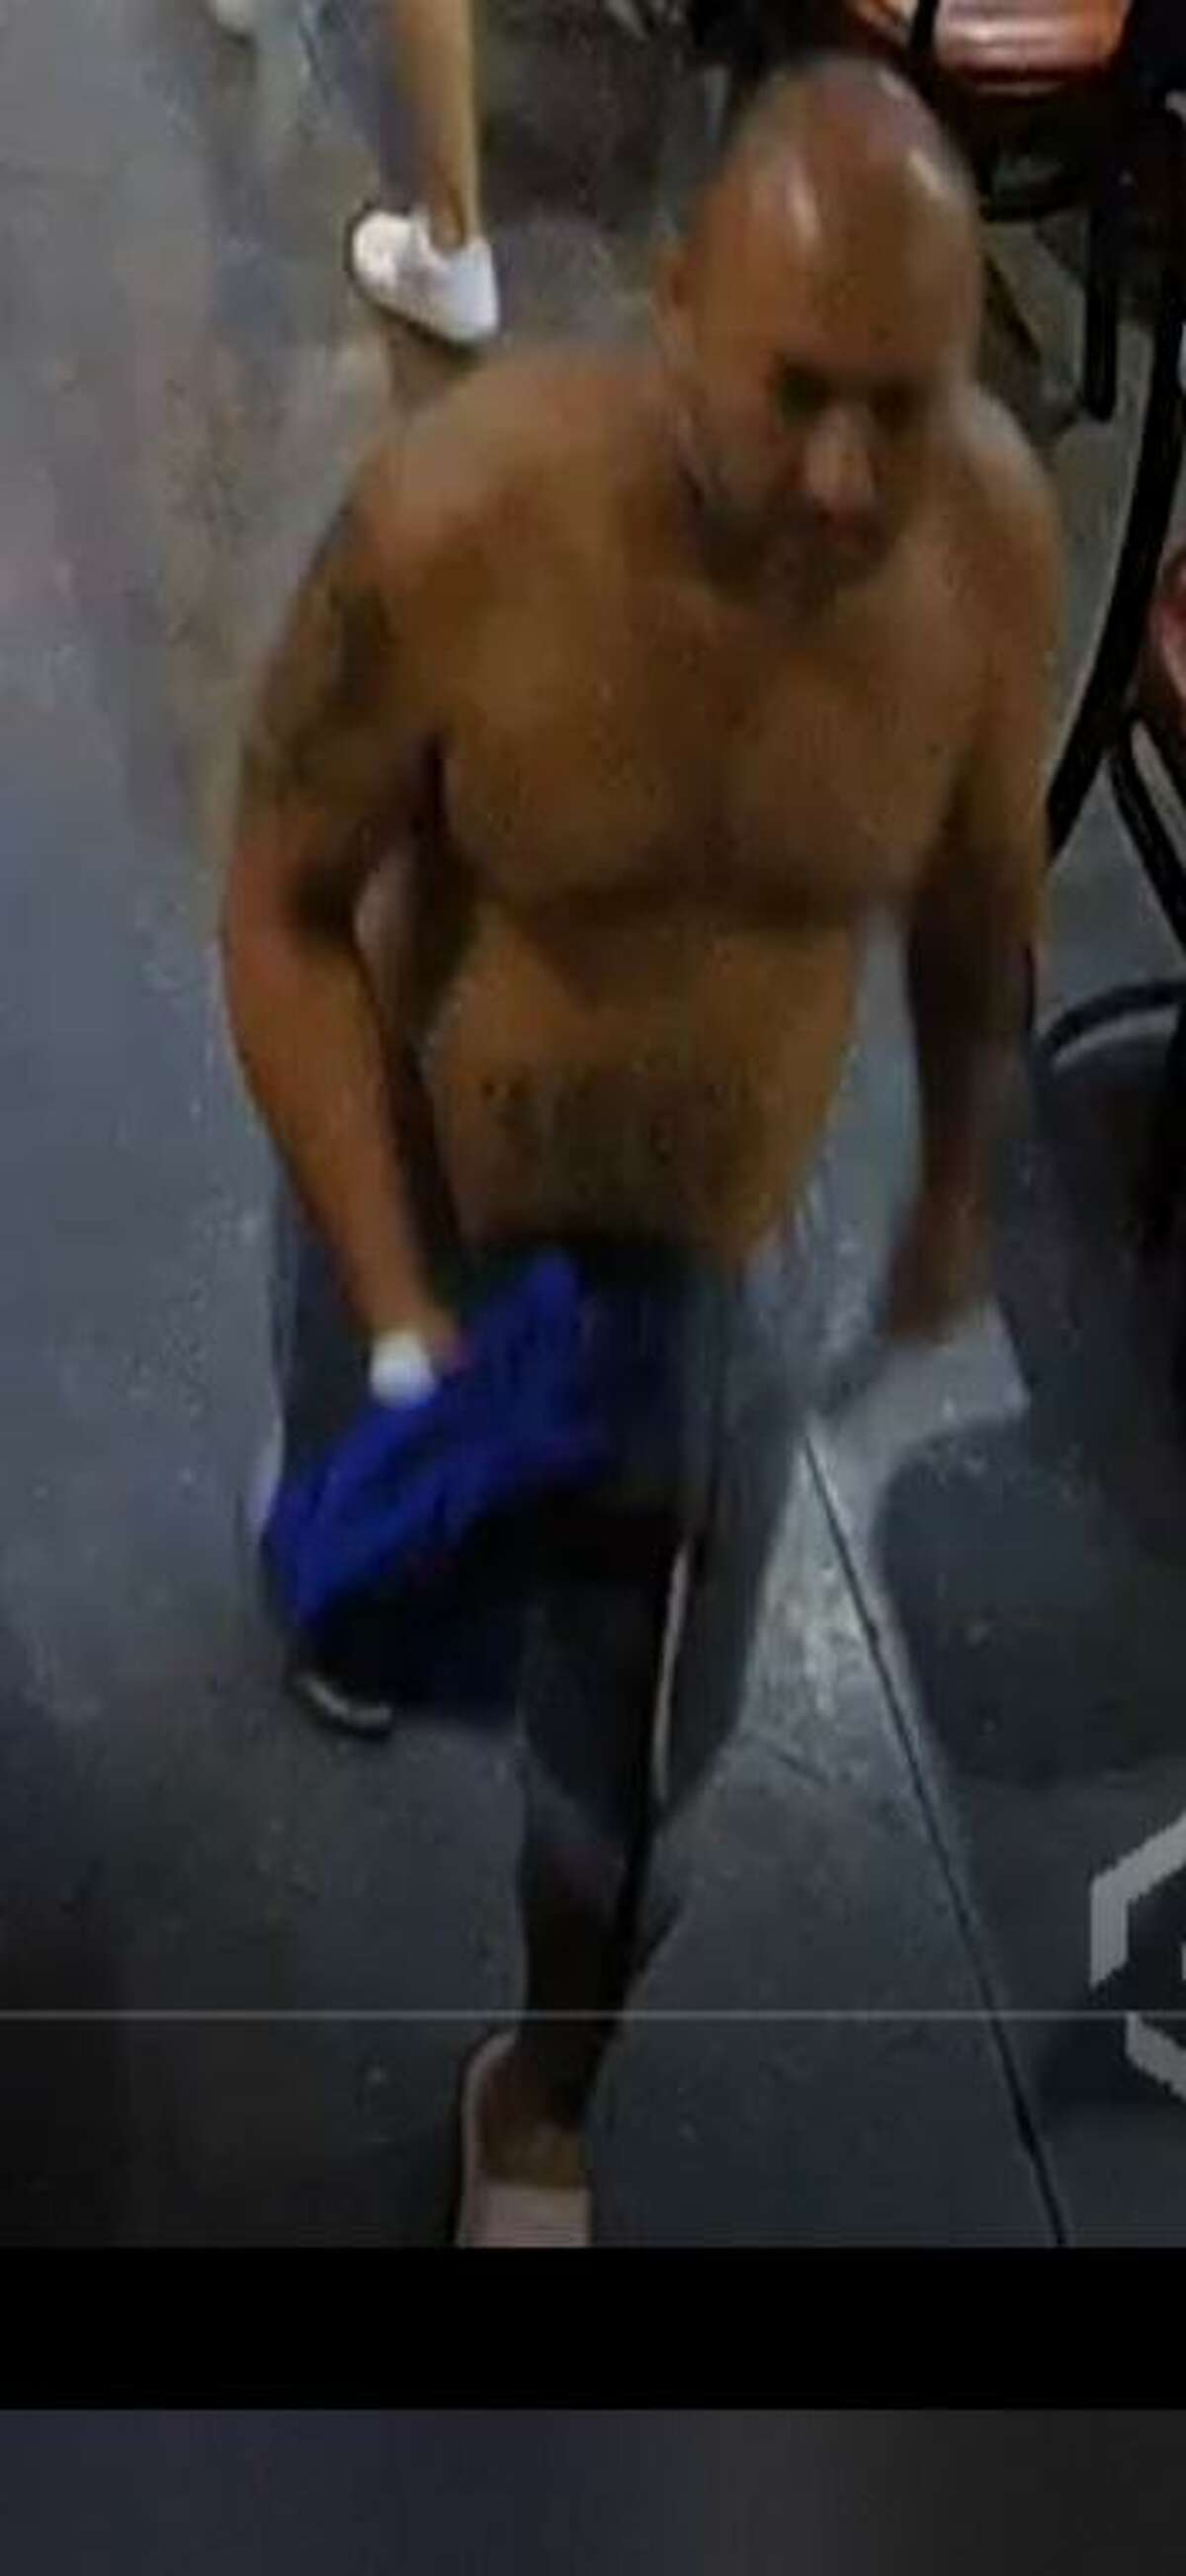 Laredo police are trying to identify this man as a theft suspect at a local restaurant.